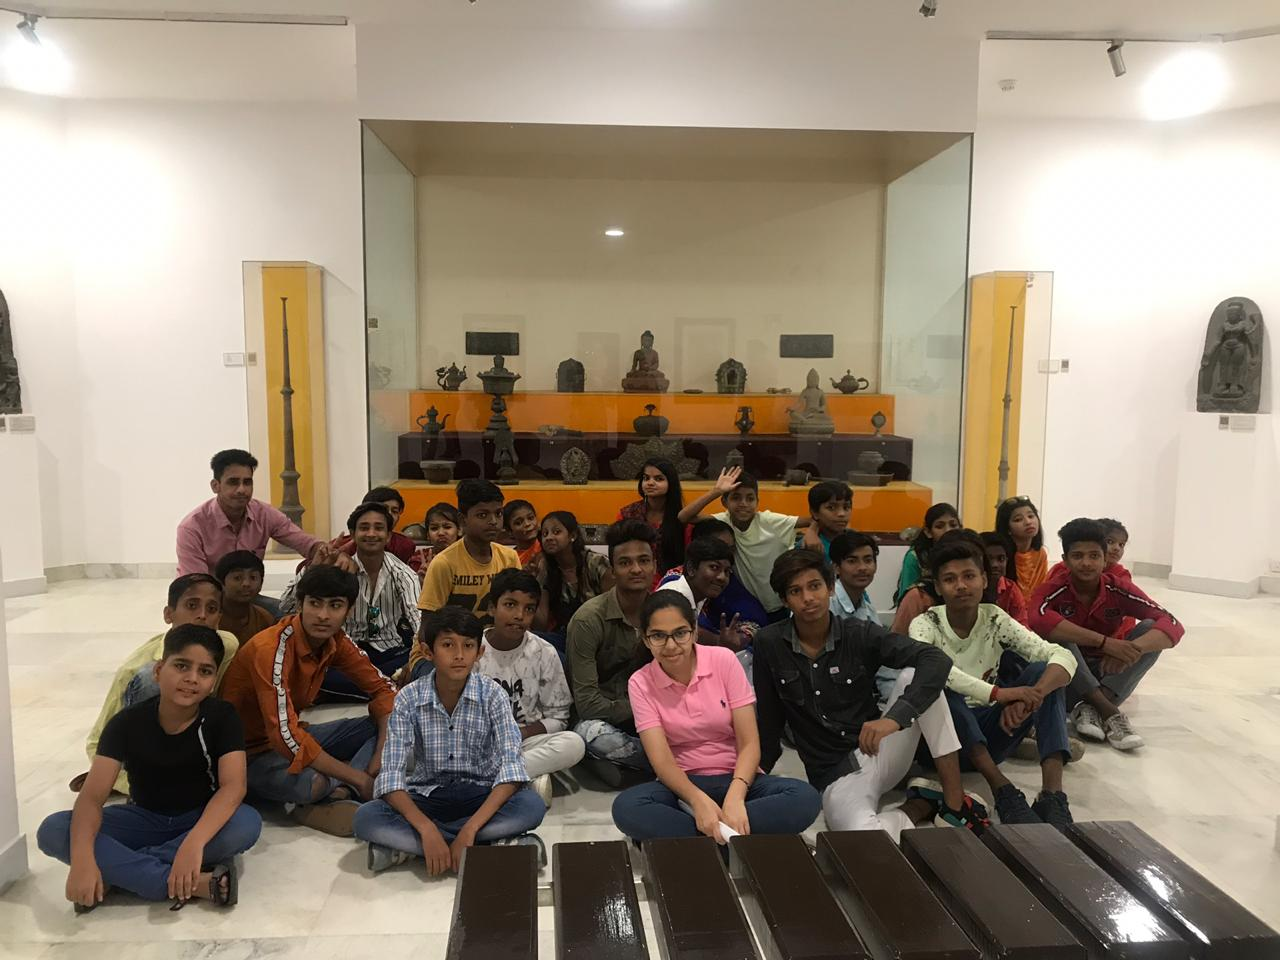 national museum Delhi tour with students